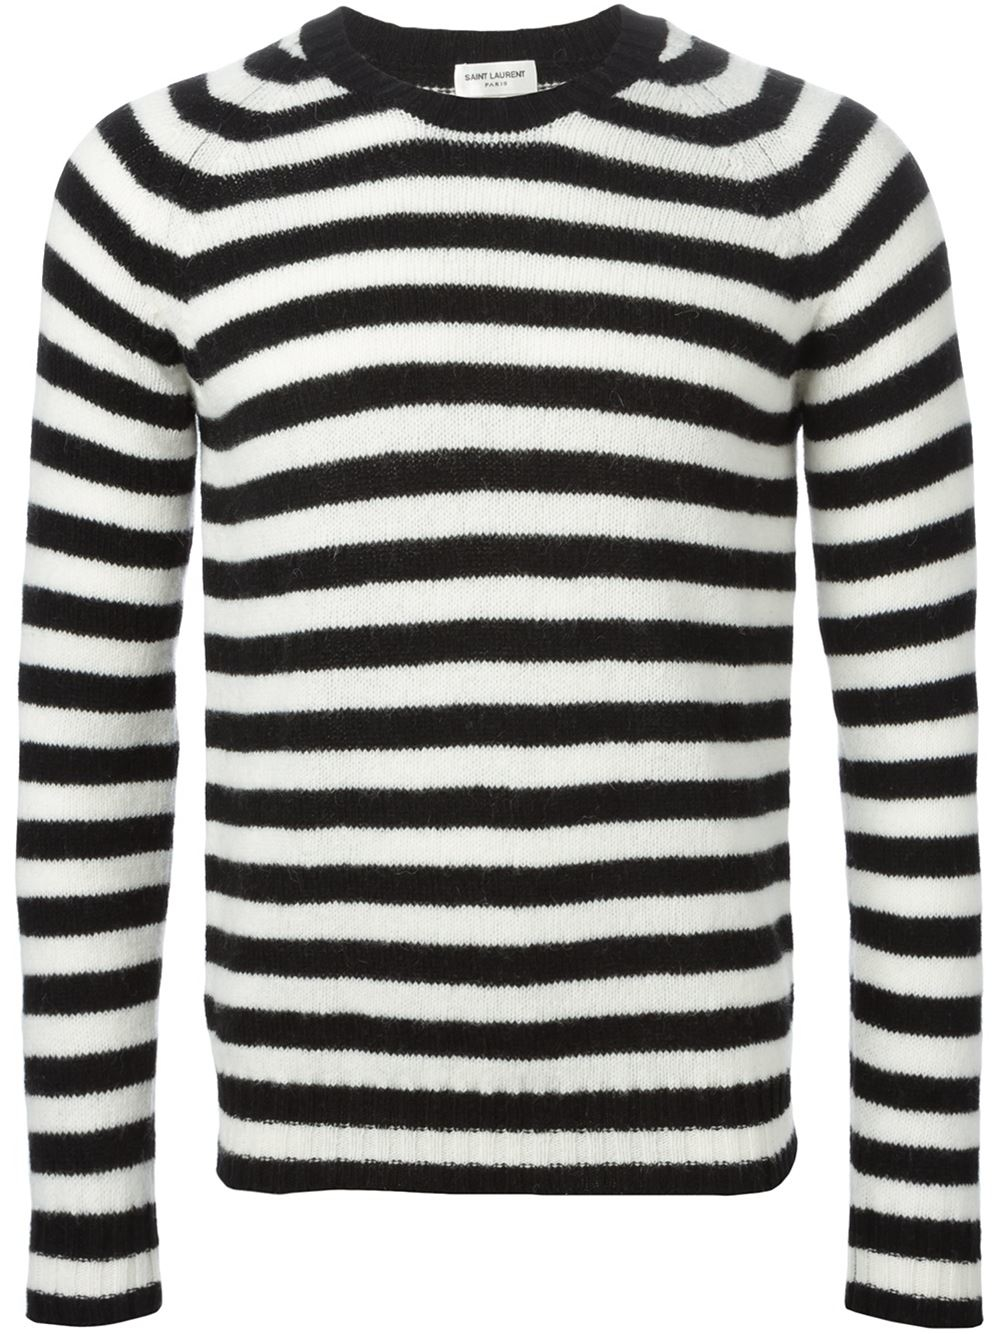 You searched for: mens striped sweater! Etsy is the home to thousands of handmade, vintage, and one-of-a-kind products and gifts related to your search. No matter what you're looking for or where you are in the world, our global marketplace of sellers can help you .